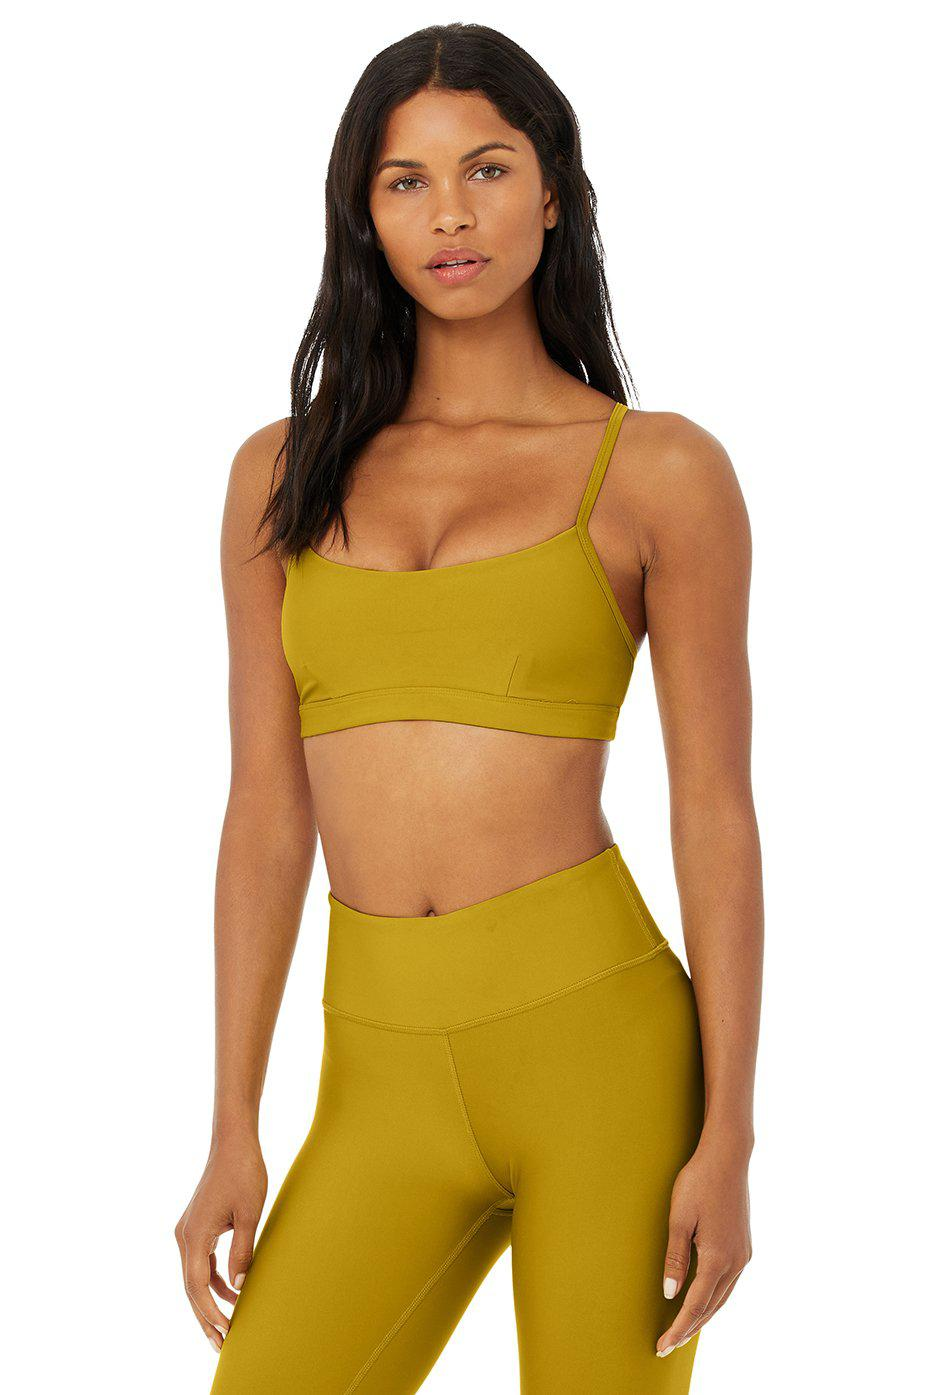 Airlift Intrigue Bra - Chartreuse 0